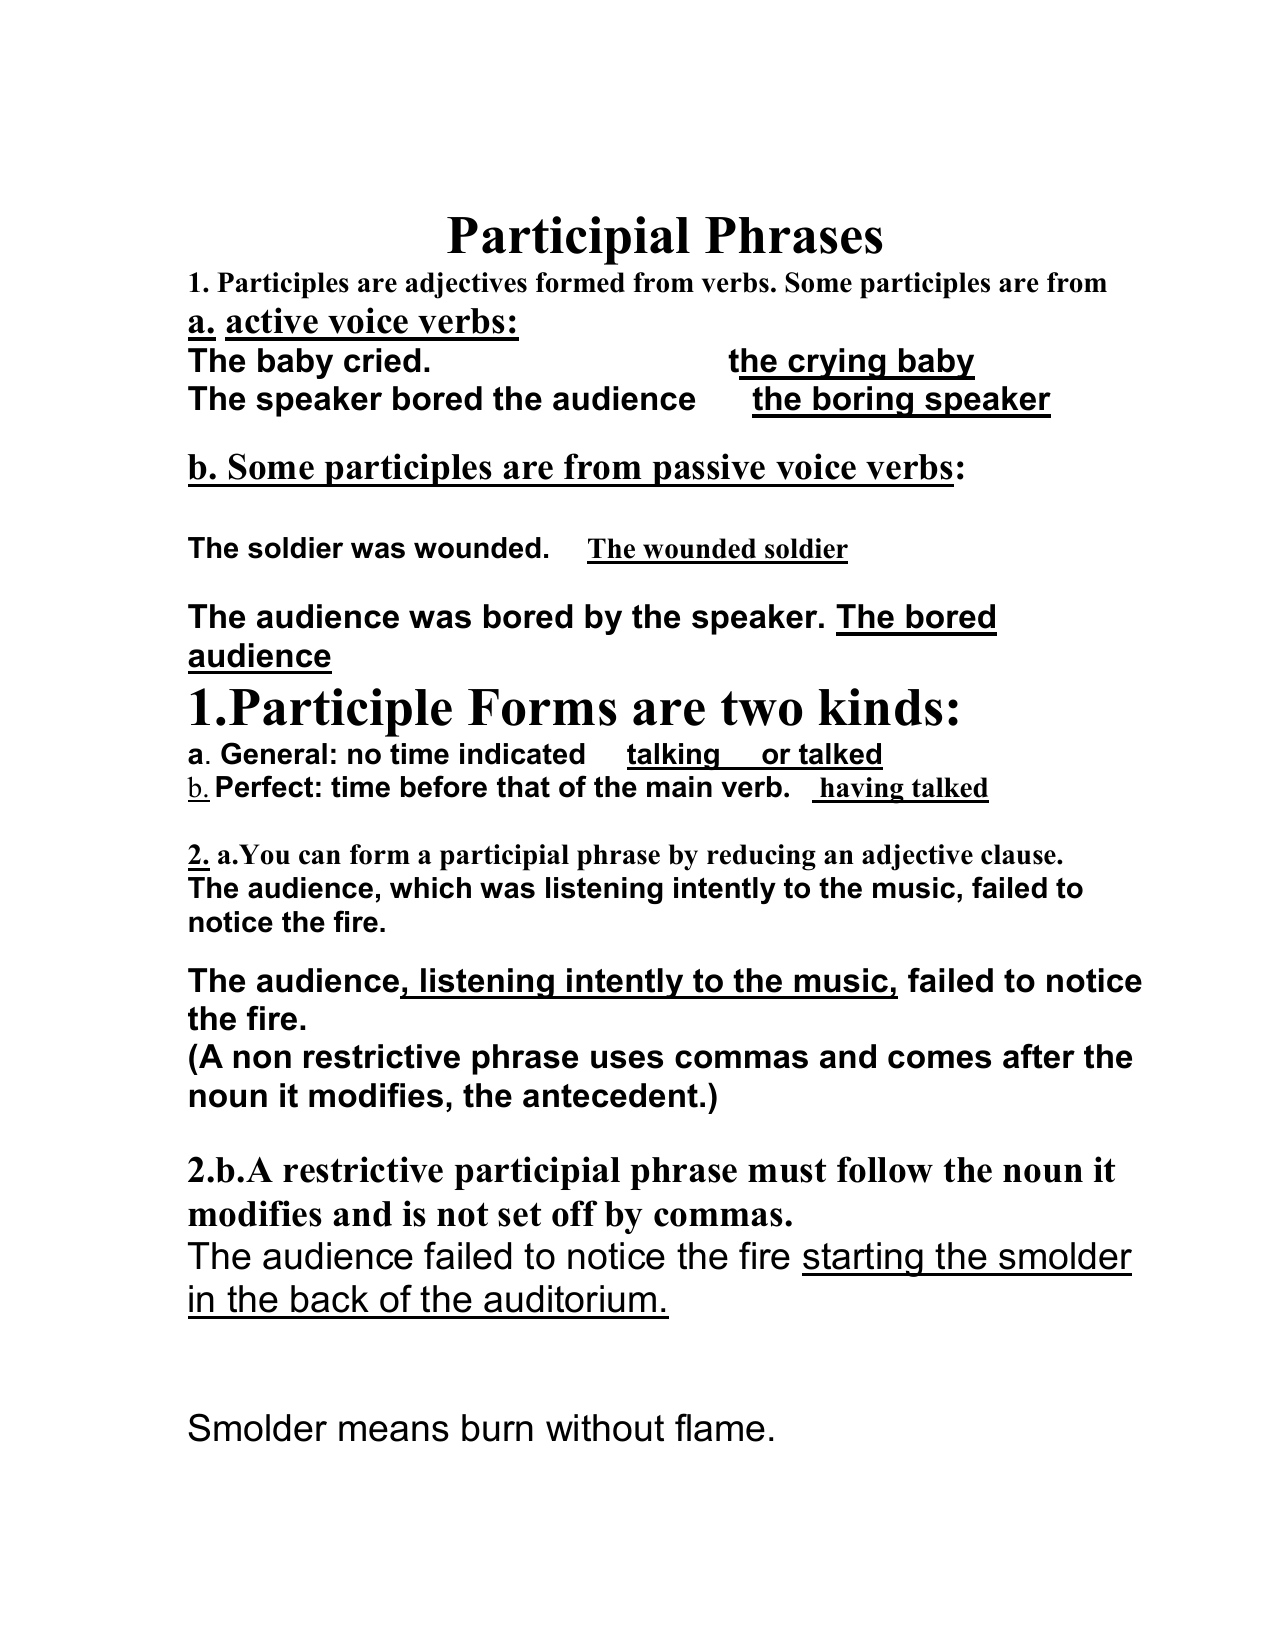 Worksheets Participial Phrase Worksheet participial phrases 1 participles are adjectives formed from verbs